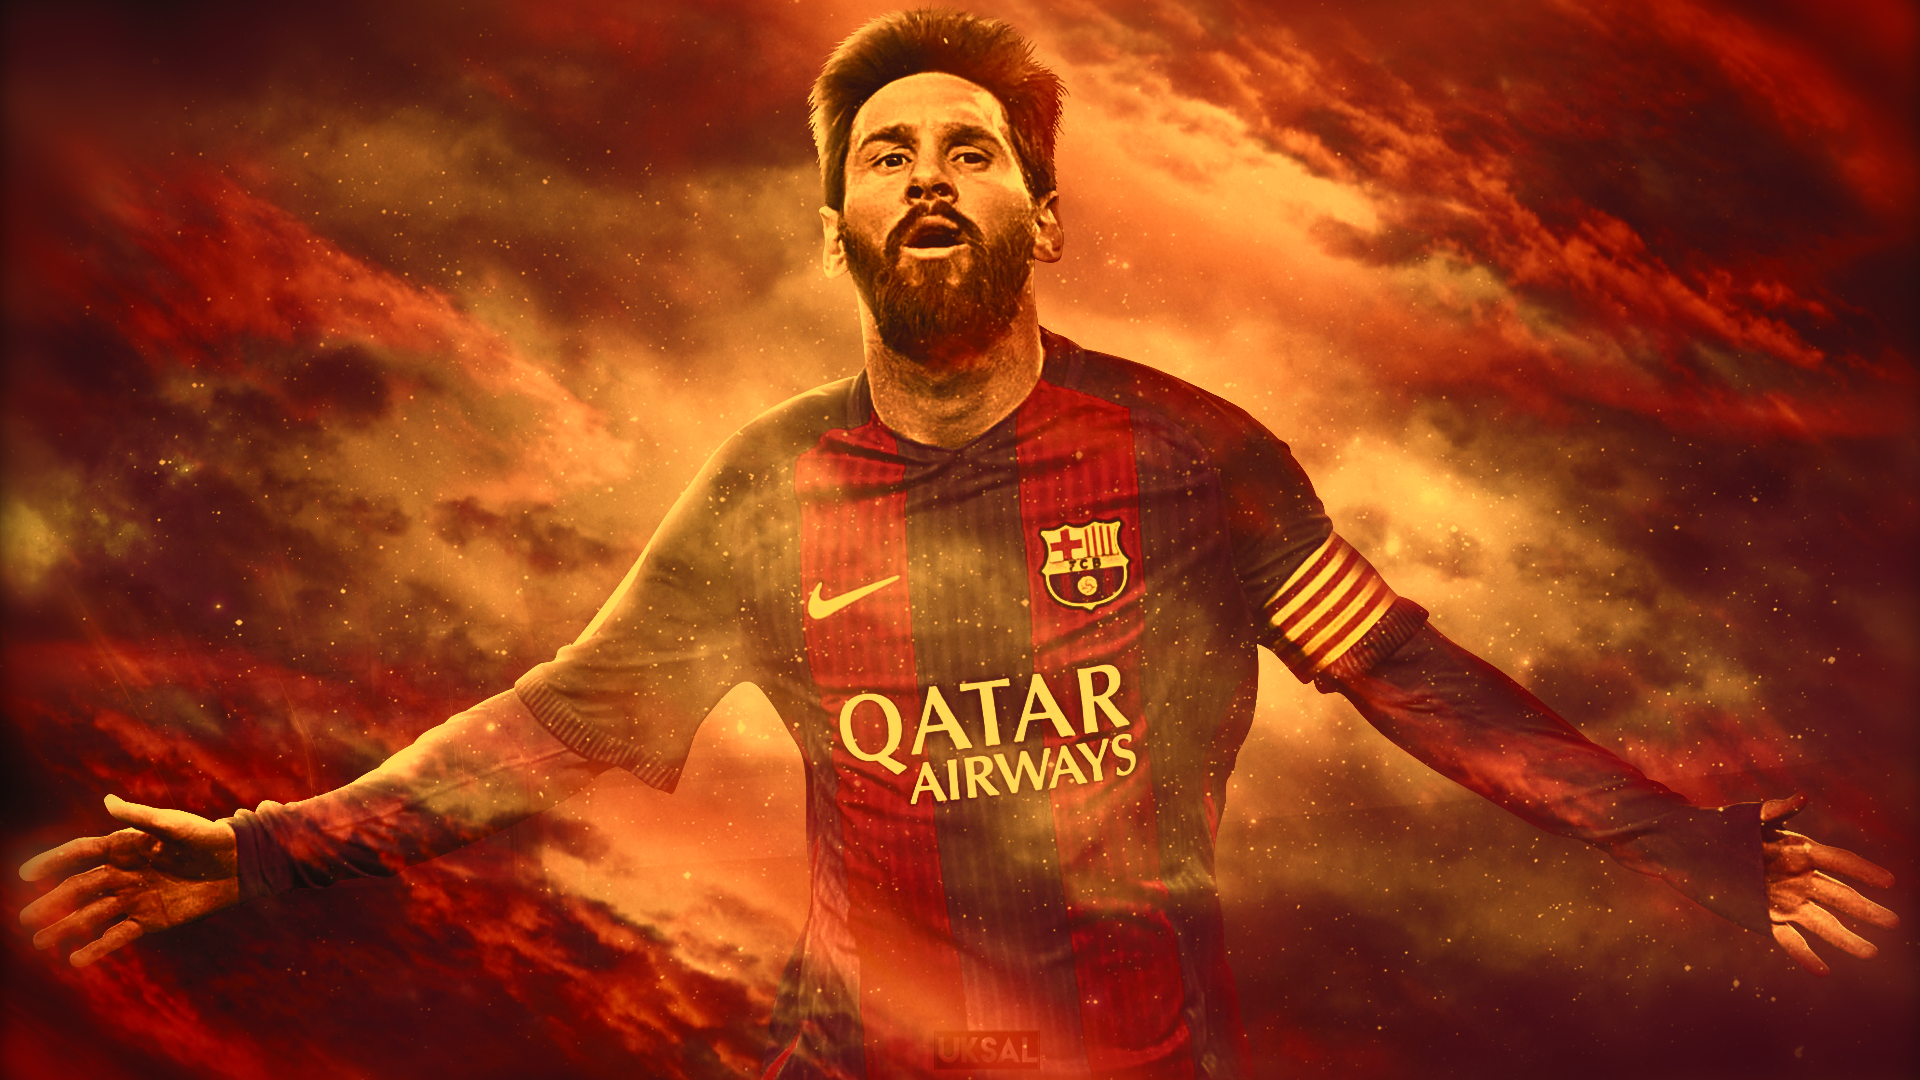 Lionel Messi 2017 Wallpapers Photo Wireless Soul Lionel Messi Wallpapers Lionel Messi Lionel Messi Barcelona